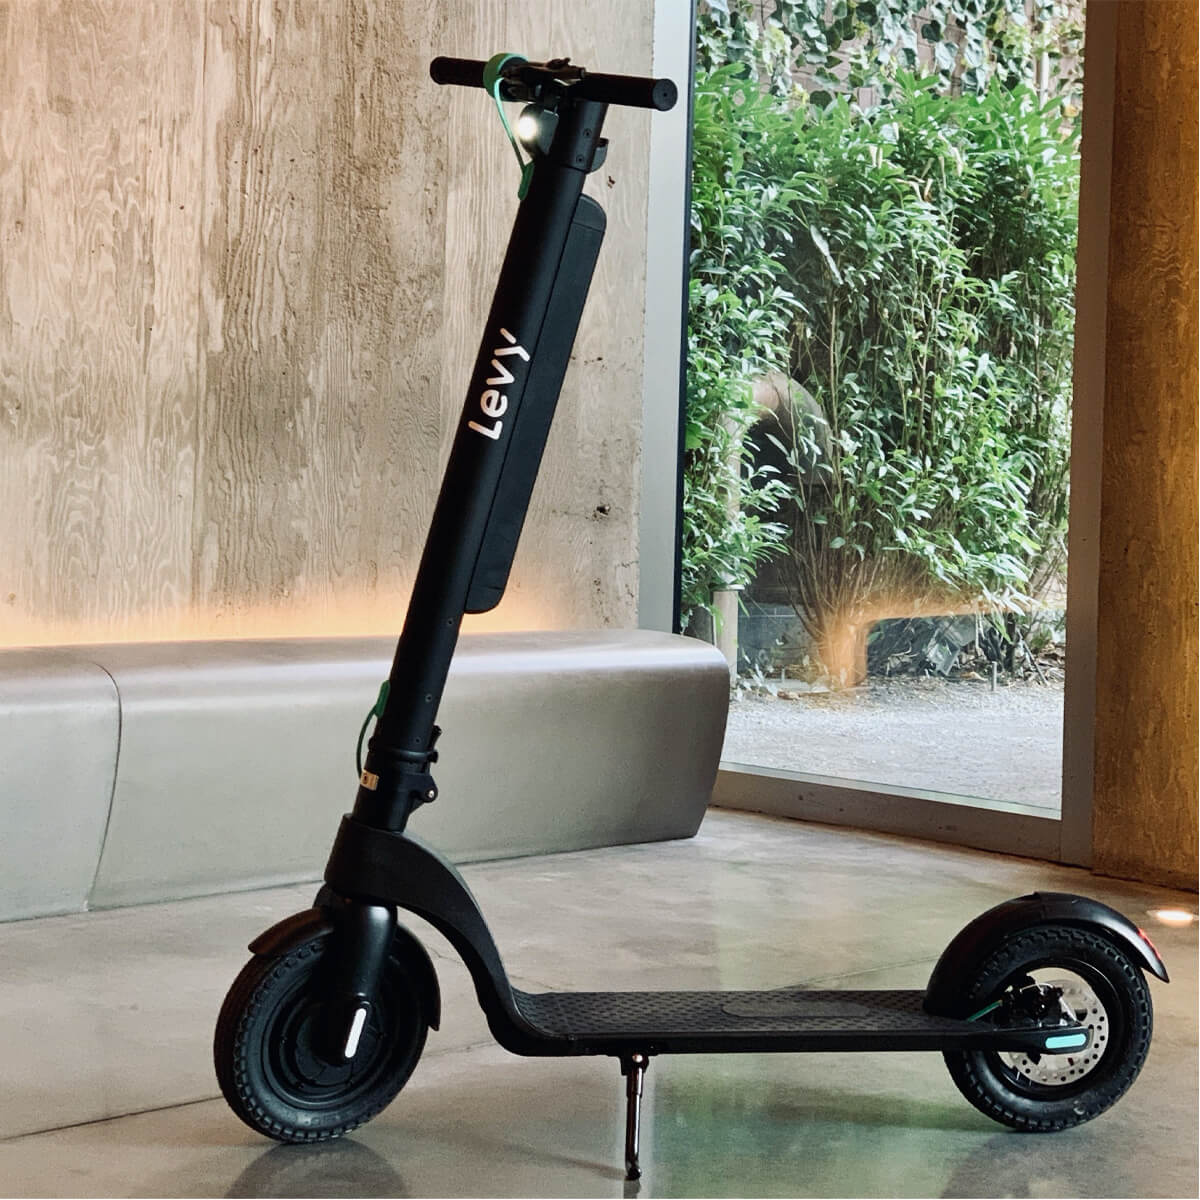 The Levy Plus Electric Scooter